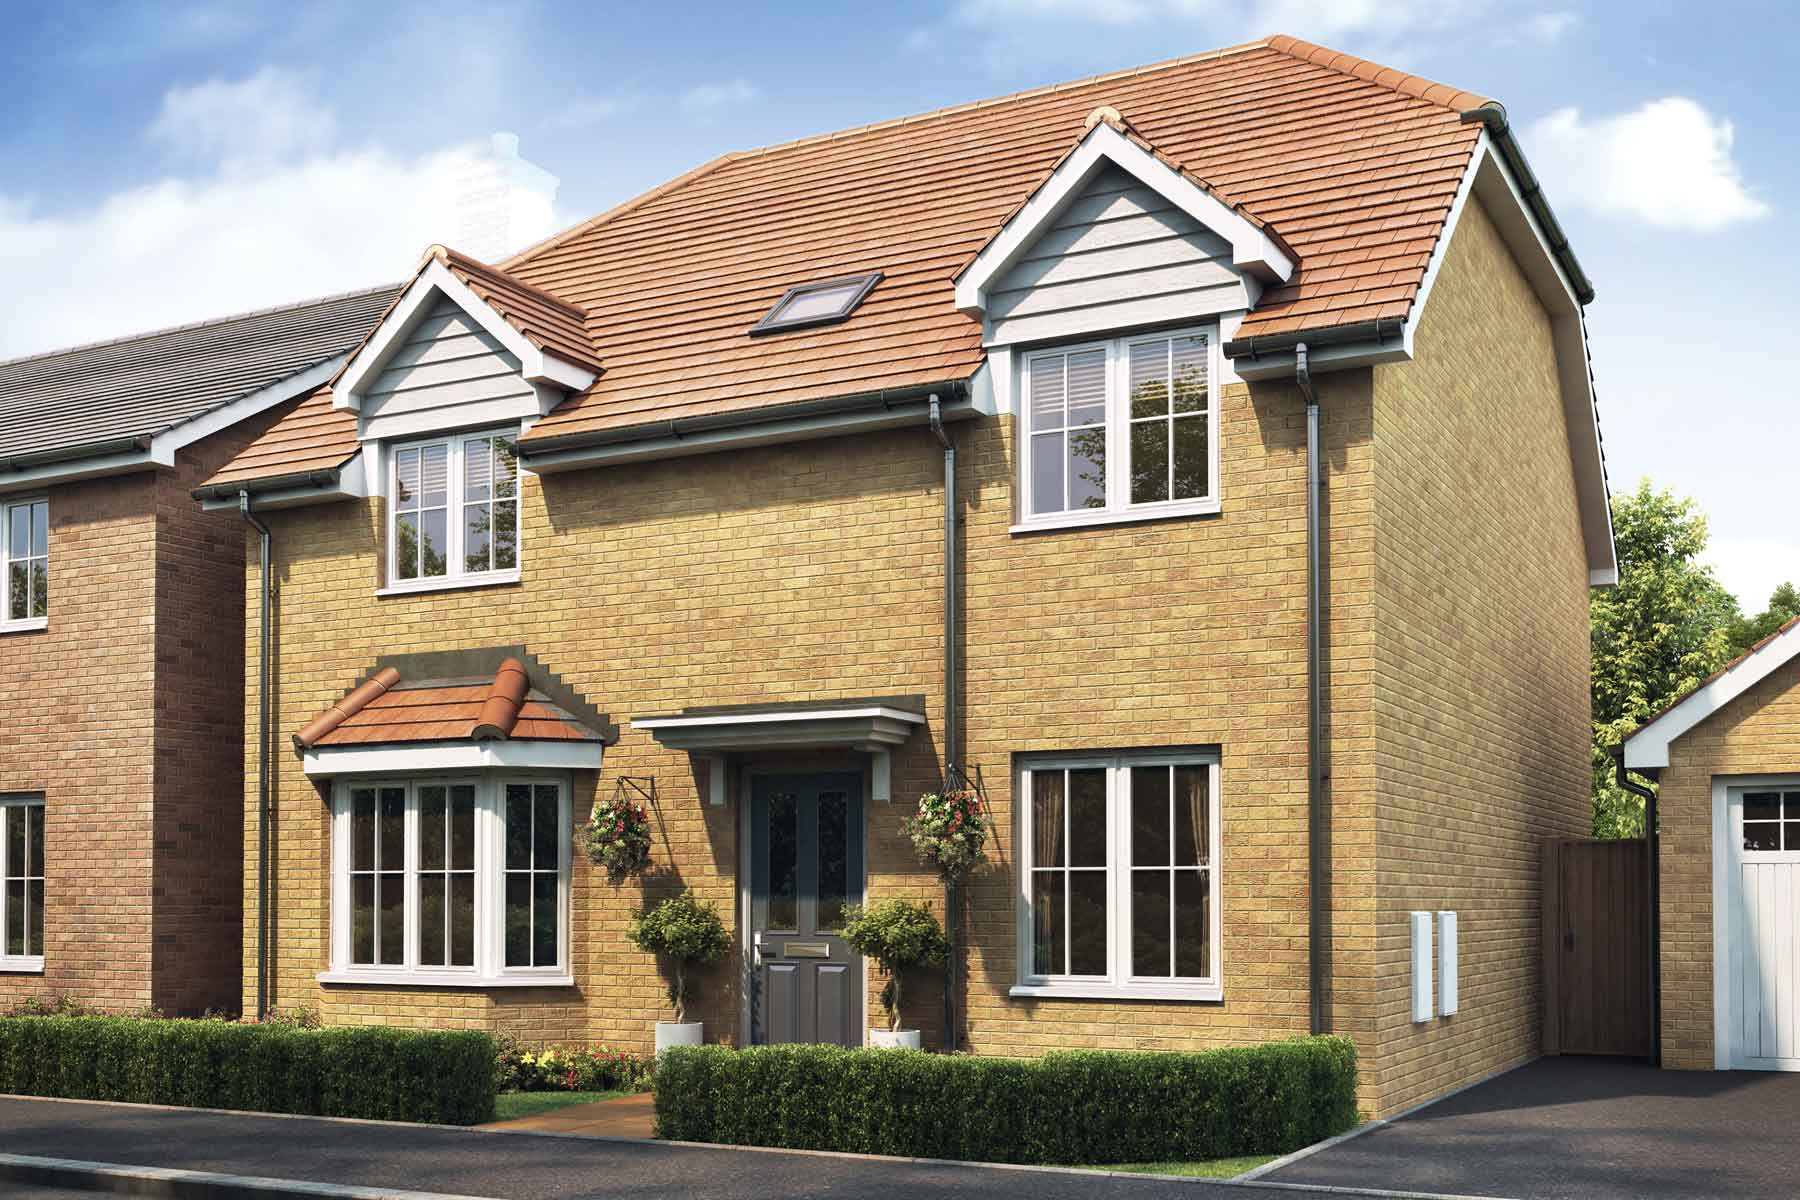 New Homes In Colchester Taylor Wimpey